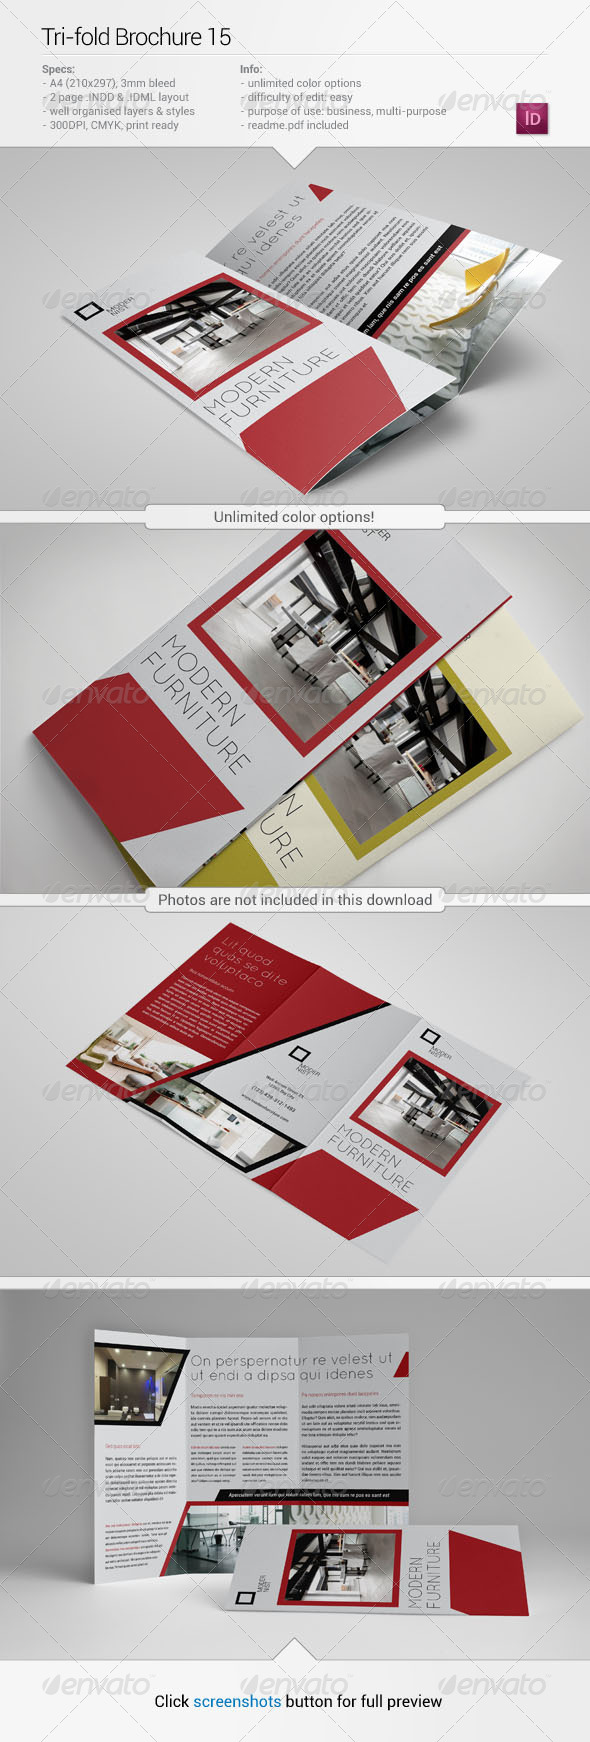 GraphicRiver Tri-Fold Brochure 15 5531831